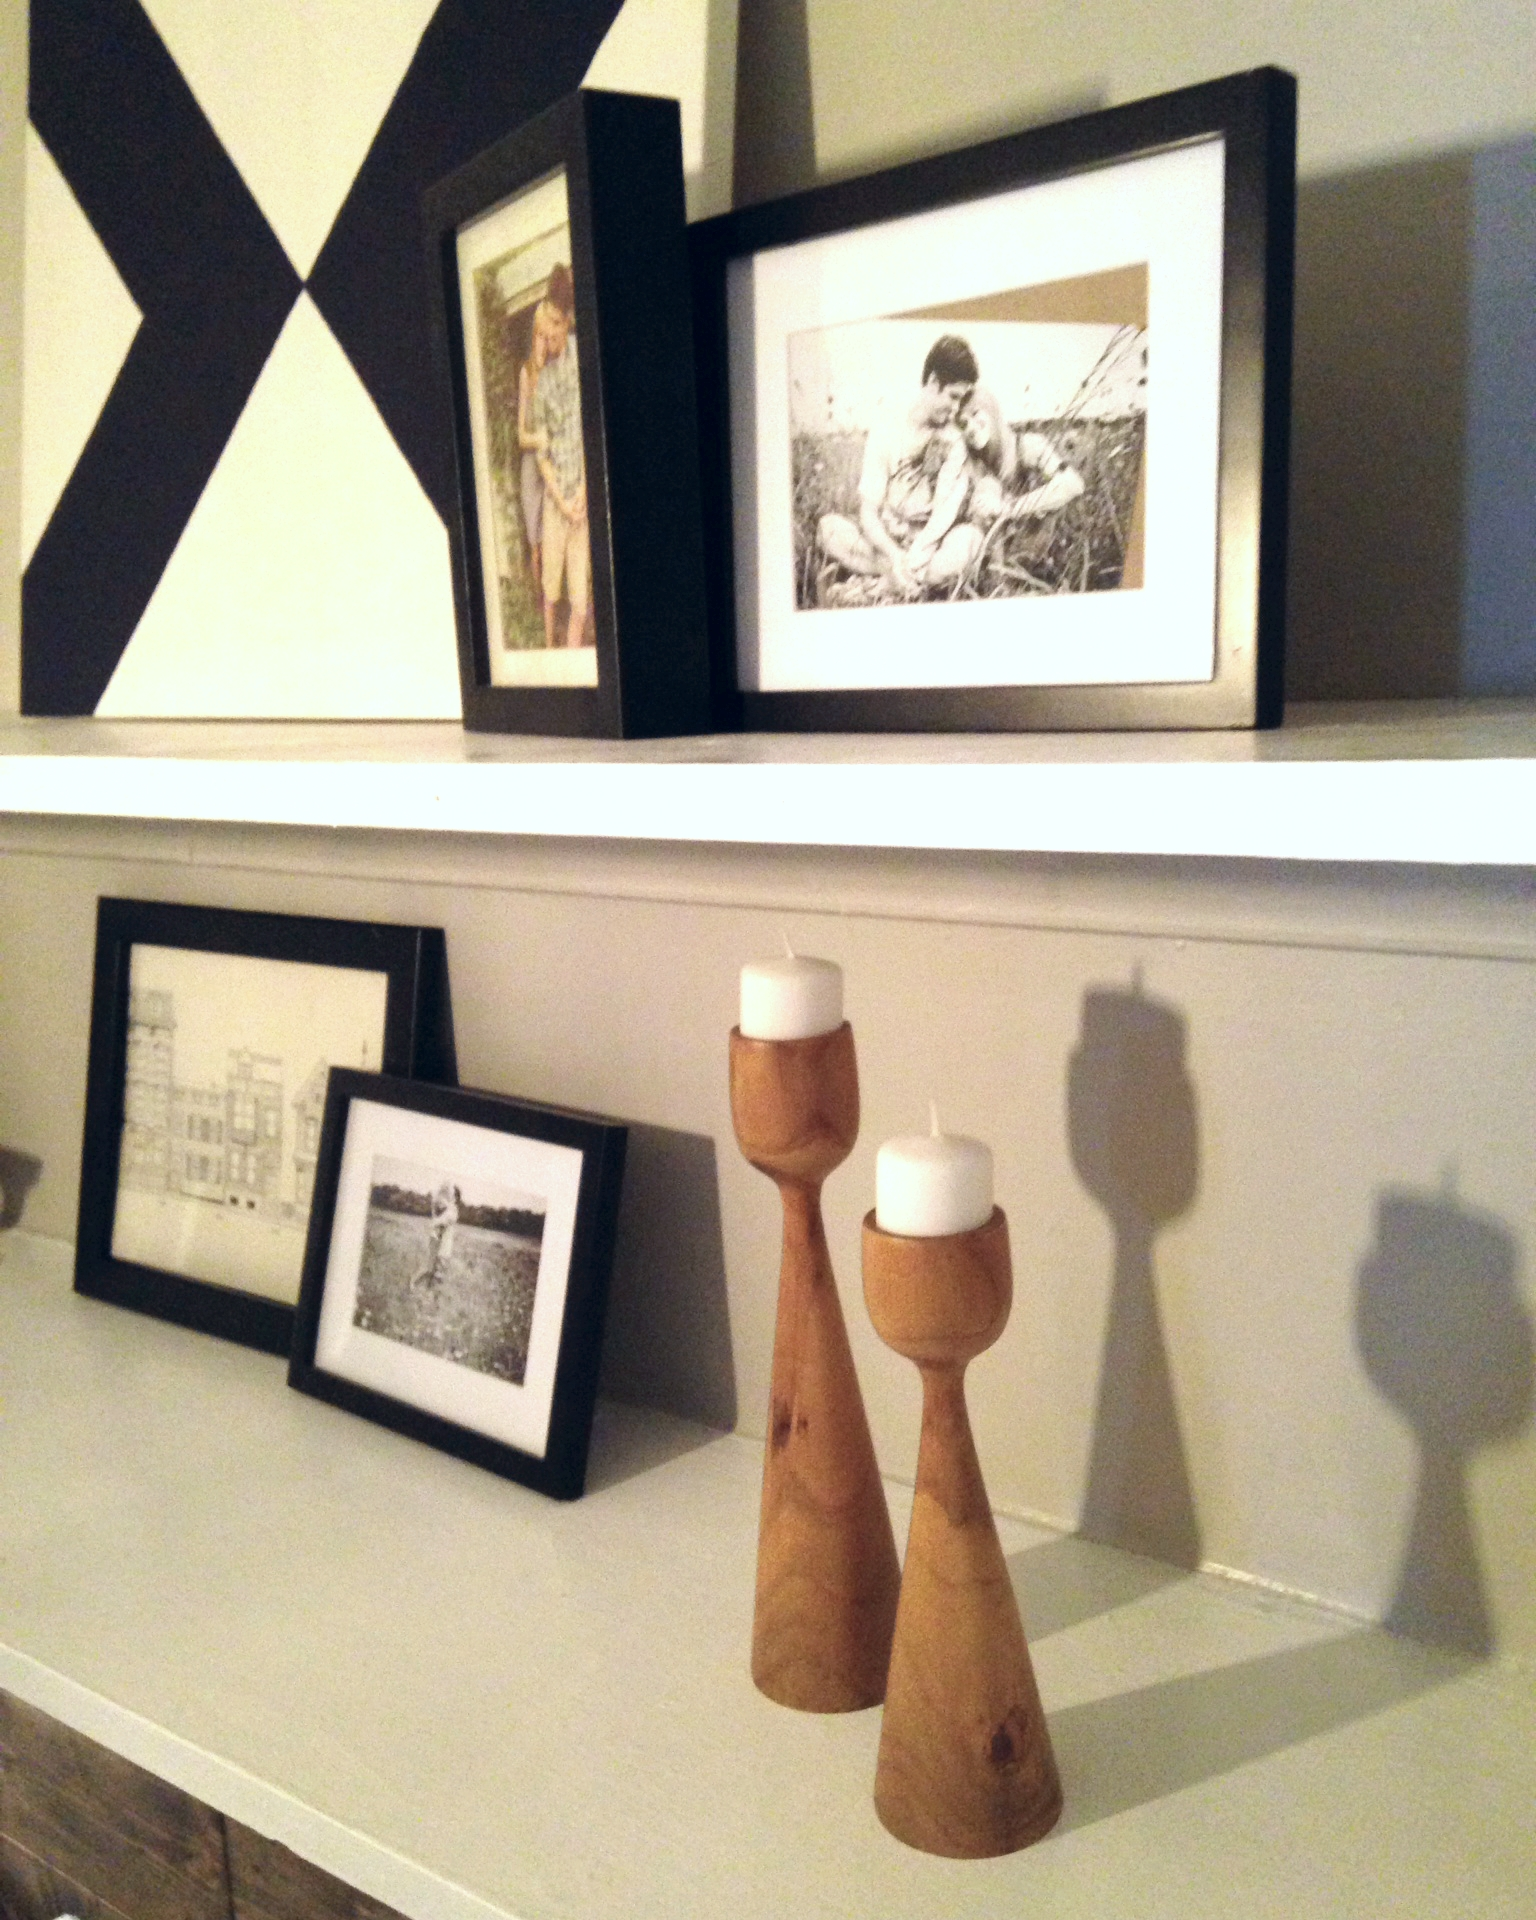 Most of the stuff on the shelf was just rearranged from what Naomi already had on hand, but I added a fun DIY canvas and and pair of candlesticks I picked up for $3 at the thrift store. They look very much like the pair West Elm sells here.